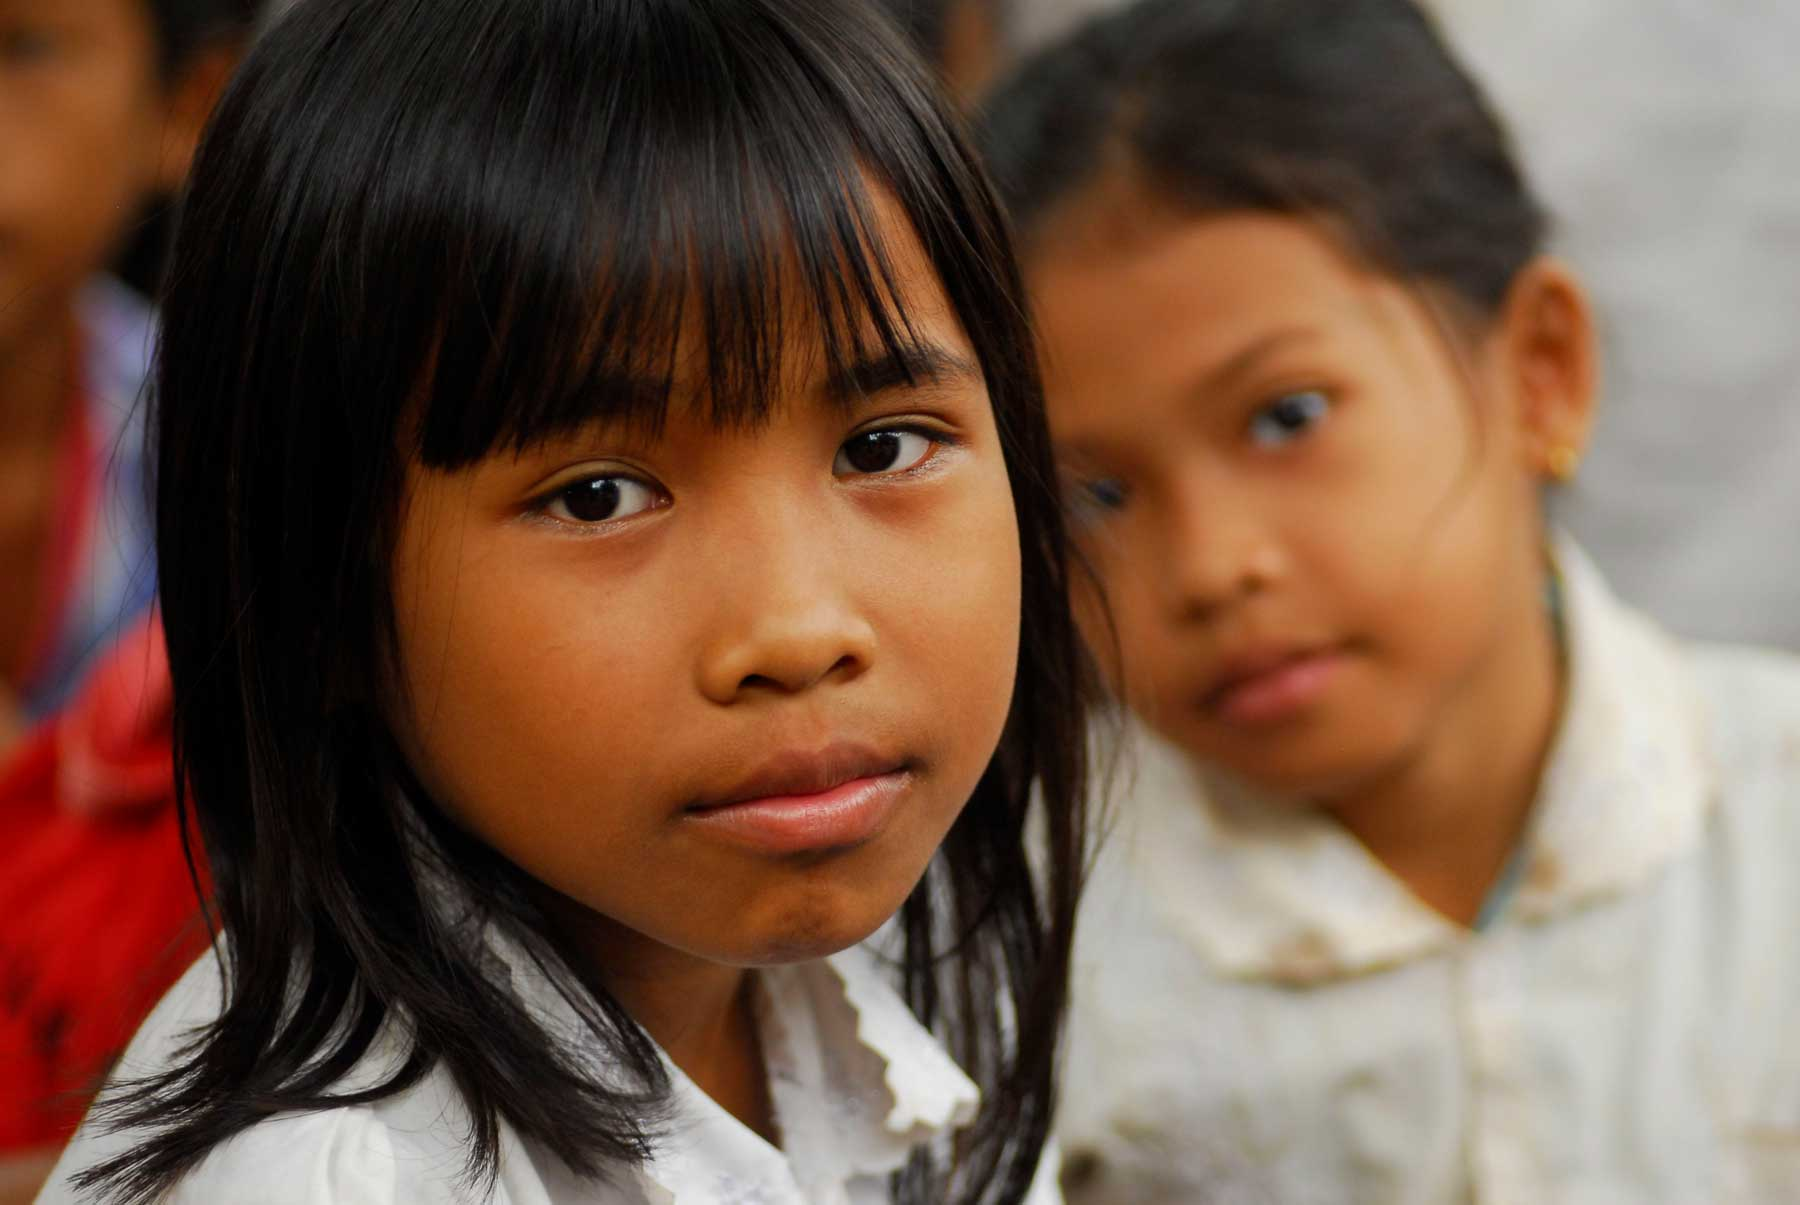 A young Cambodian girl solarised by the NGO AVEC thanks to the sponsorship of the AVEC foundation in Switzerland.